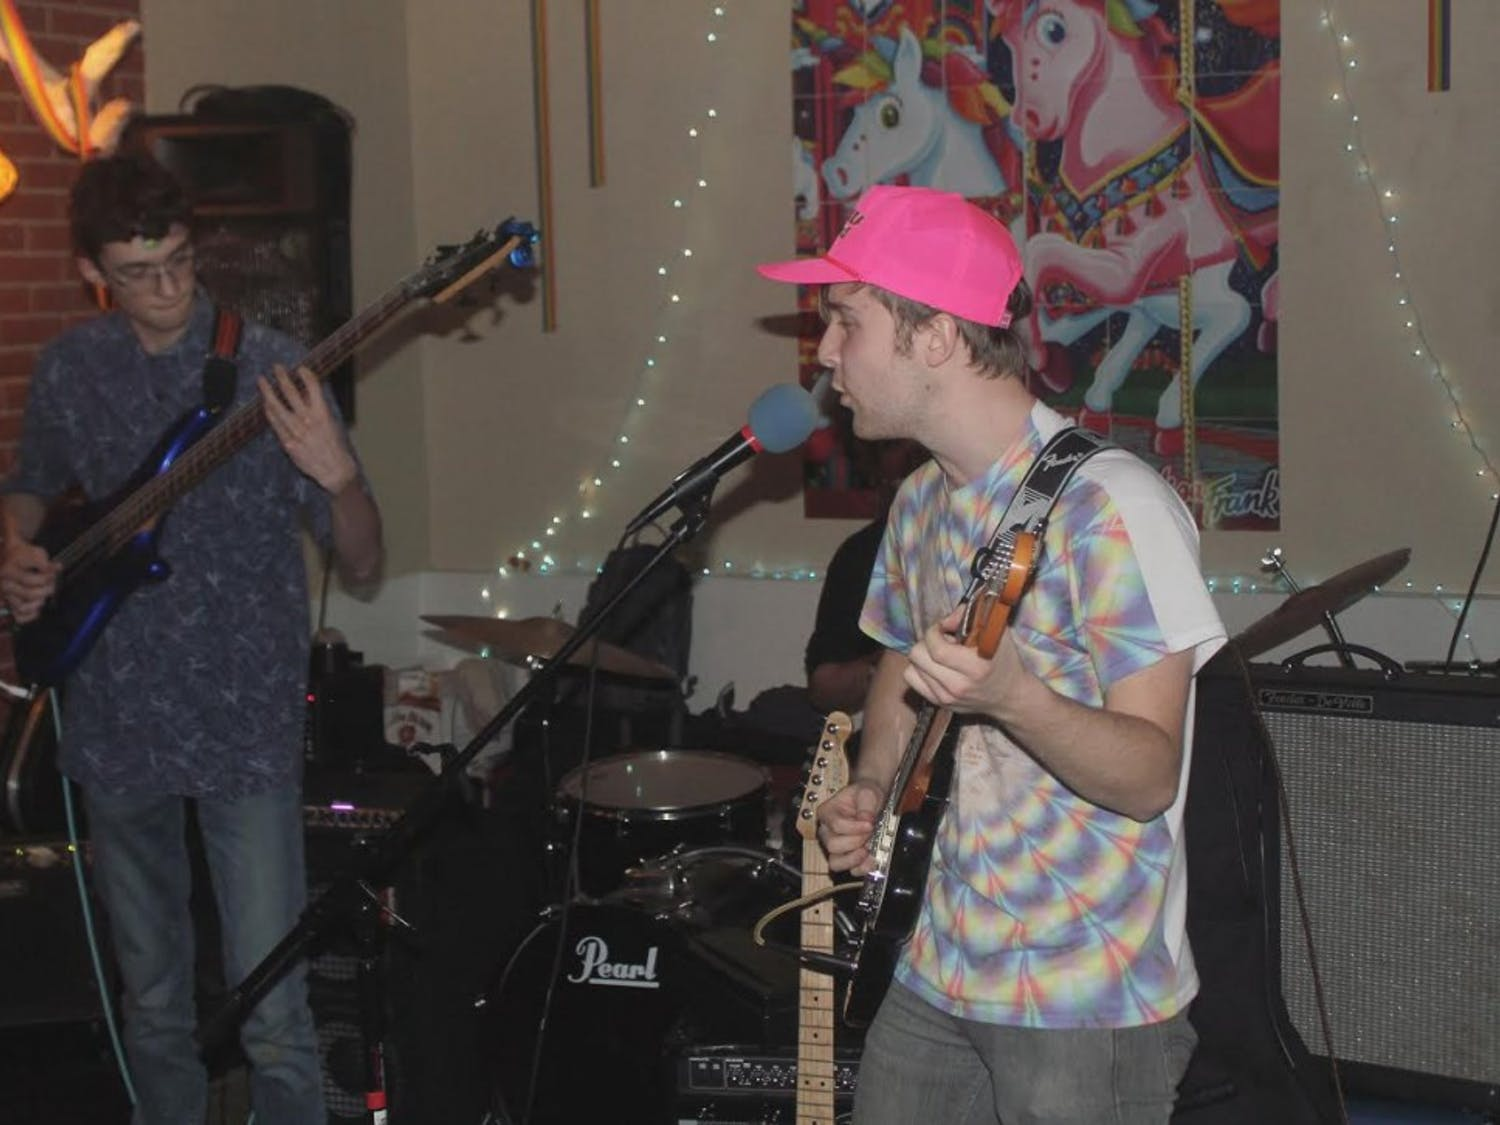 Nate Wagner performs as part of Lord Bendtner at St. Anthony's Lisa Frank party. Photo courtesy of Nate Wagner.